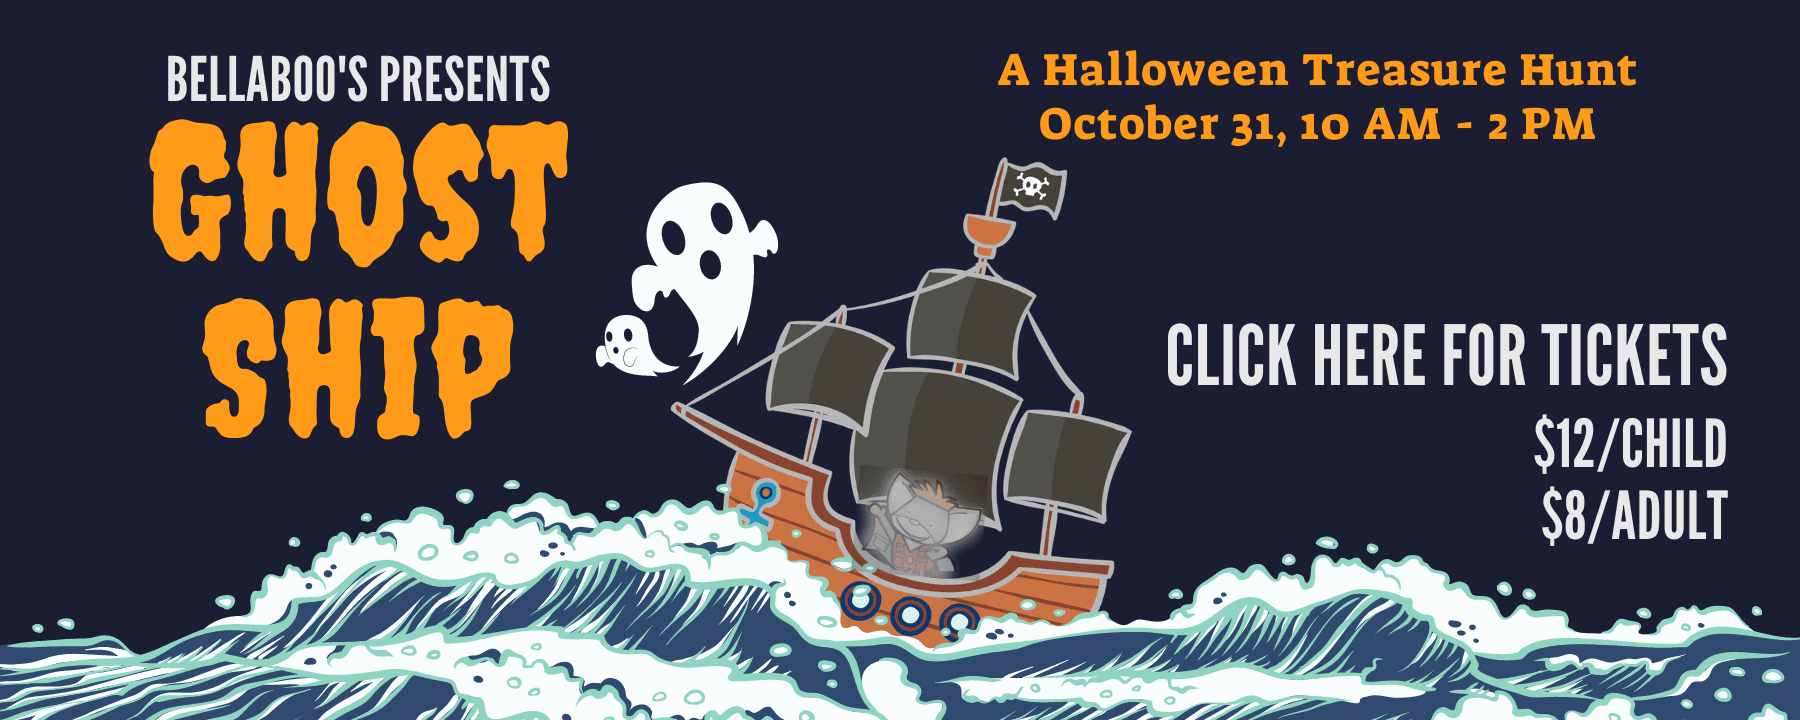 Click here to get your tickets for Bellaboo's Ghost Ship Halloween Adventure!